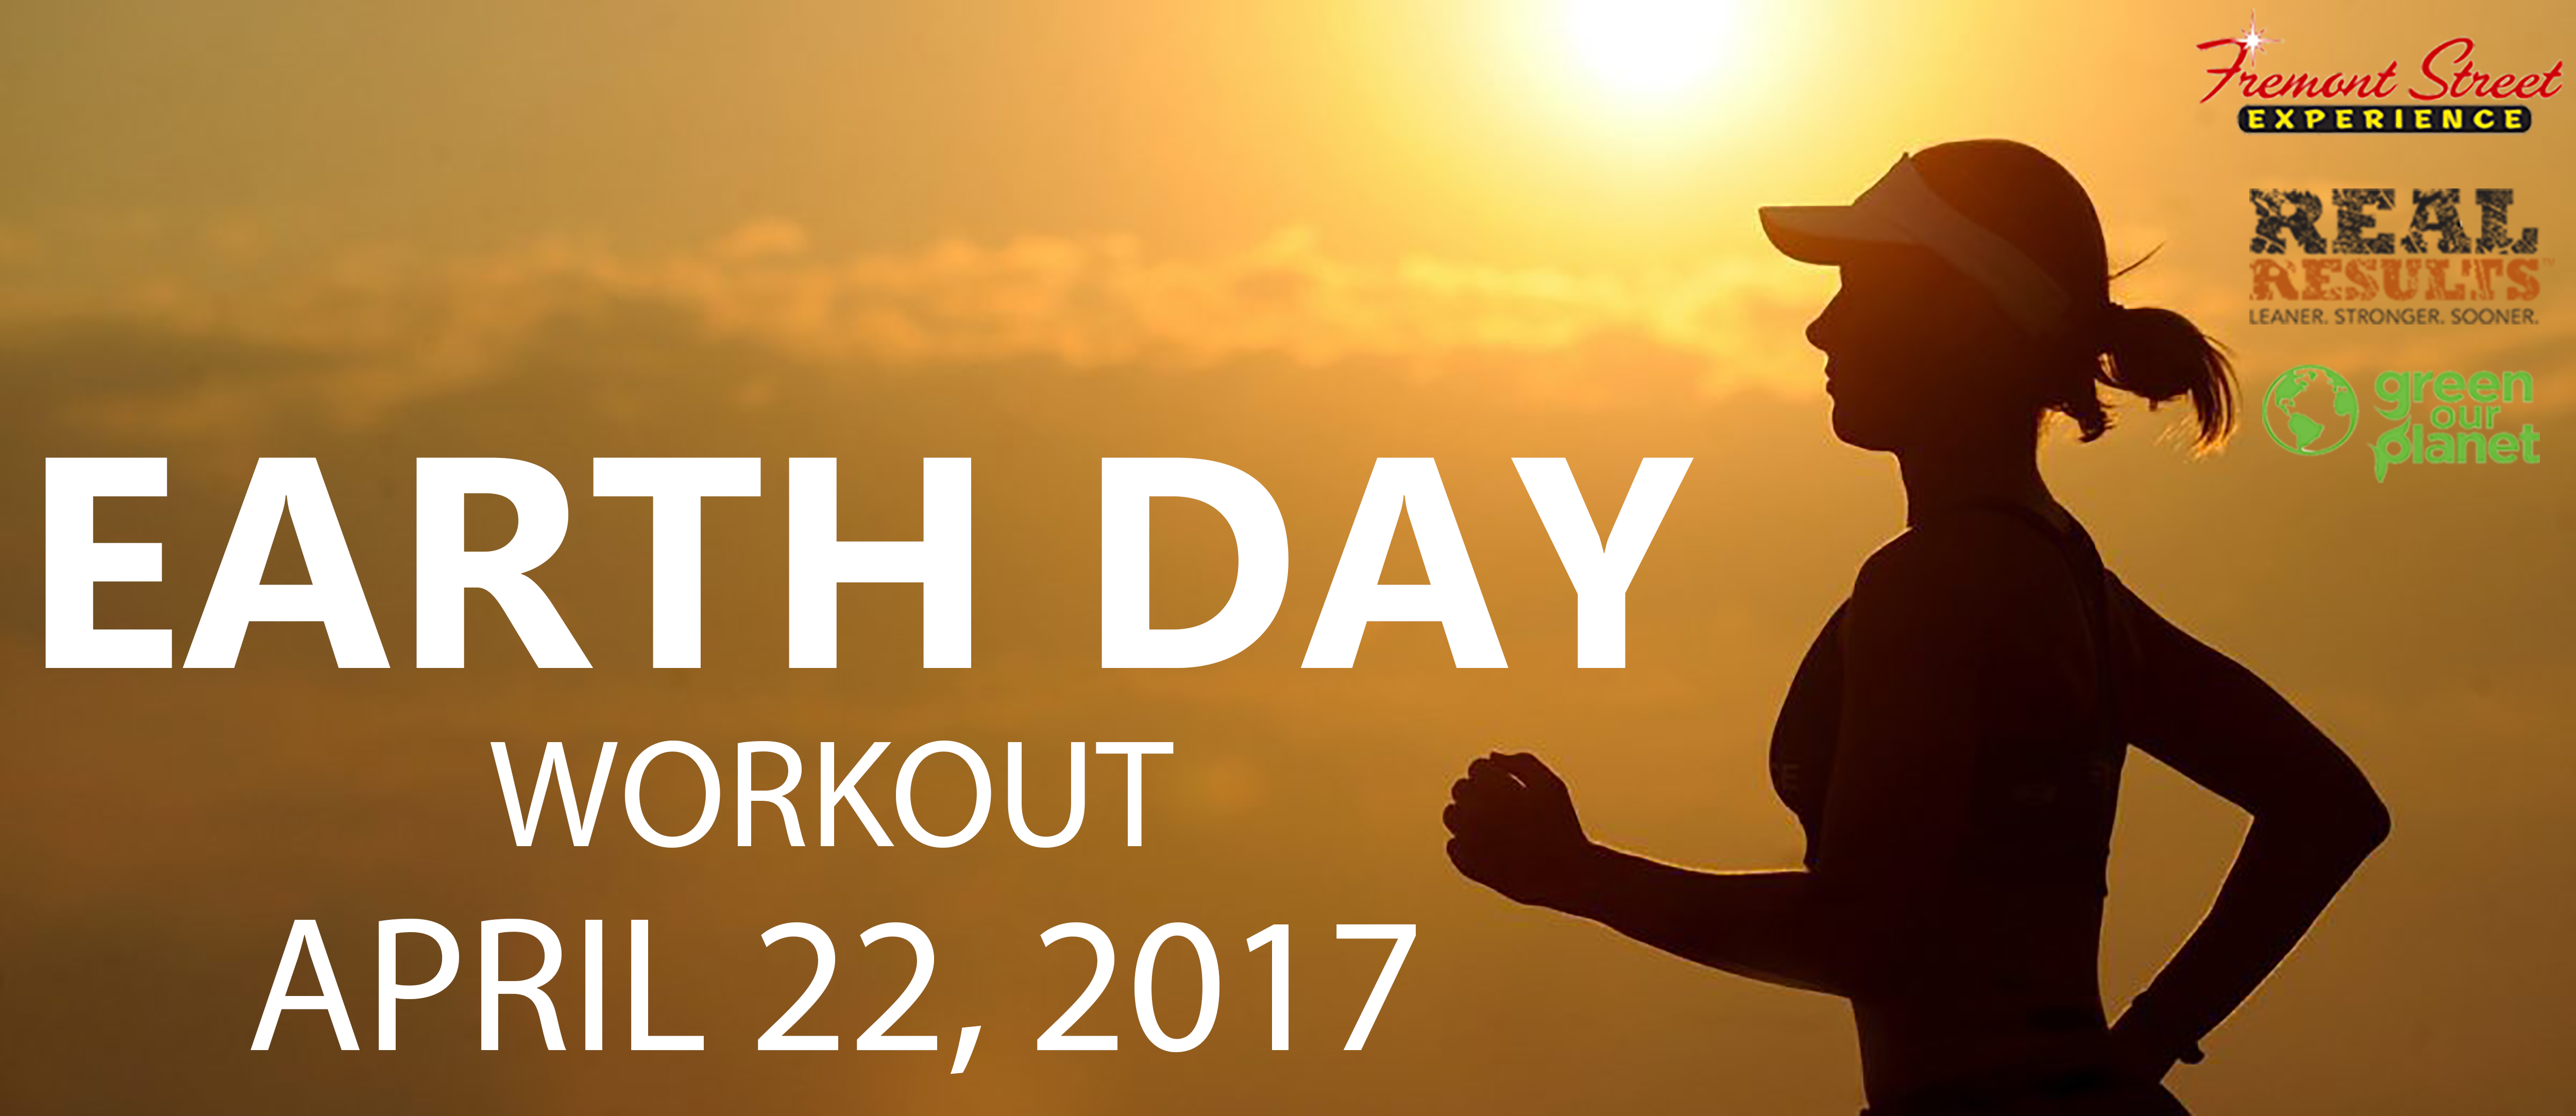 Head Downtown for an Earth Day Workout on April 22